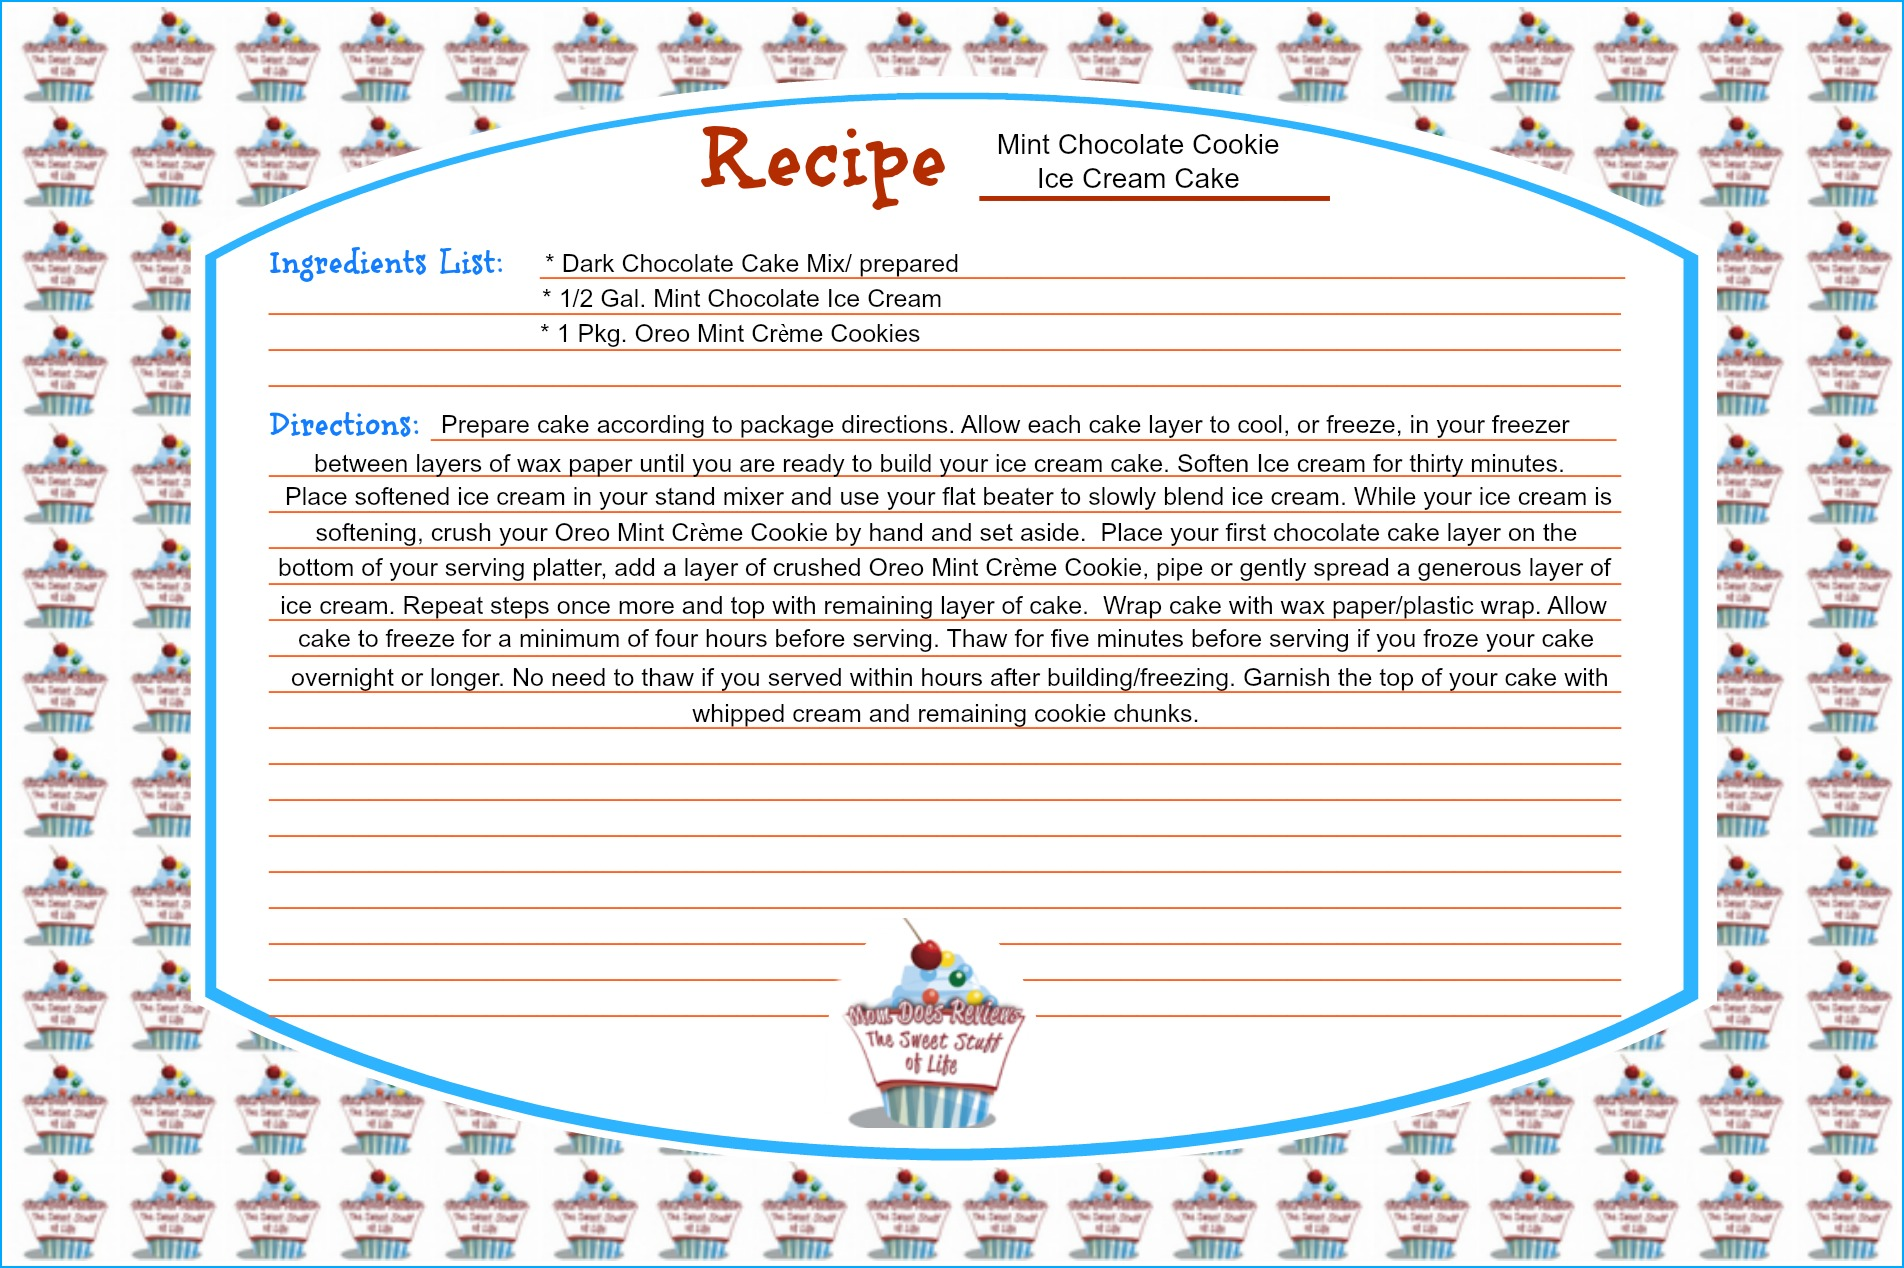 FREE Downloadable Recipe Cards at Mom Does Reviews | Mint Chocolate Cookie Ice Cream Cake Recipe | #MomDoesReviews